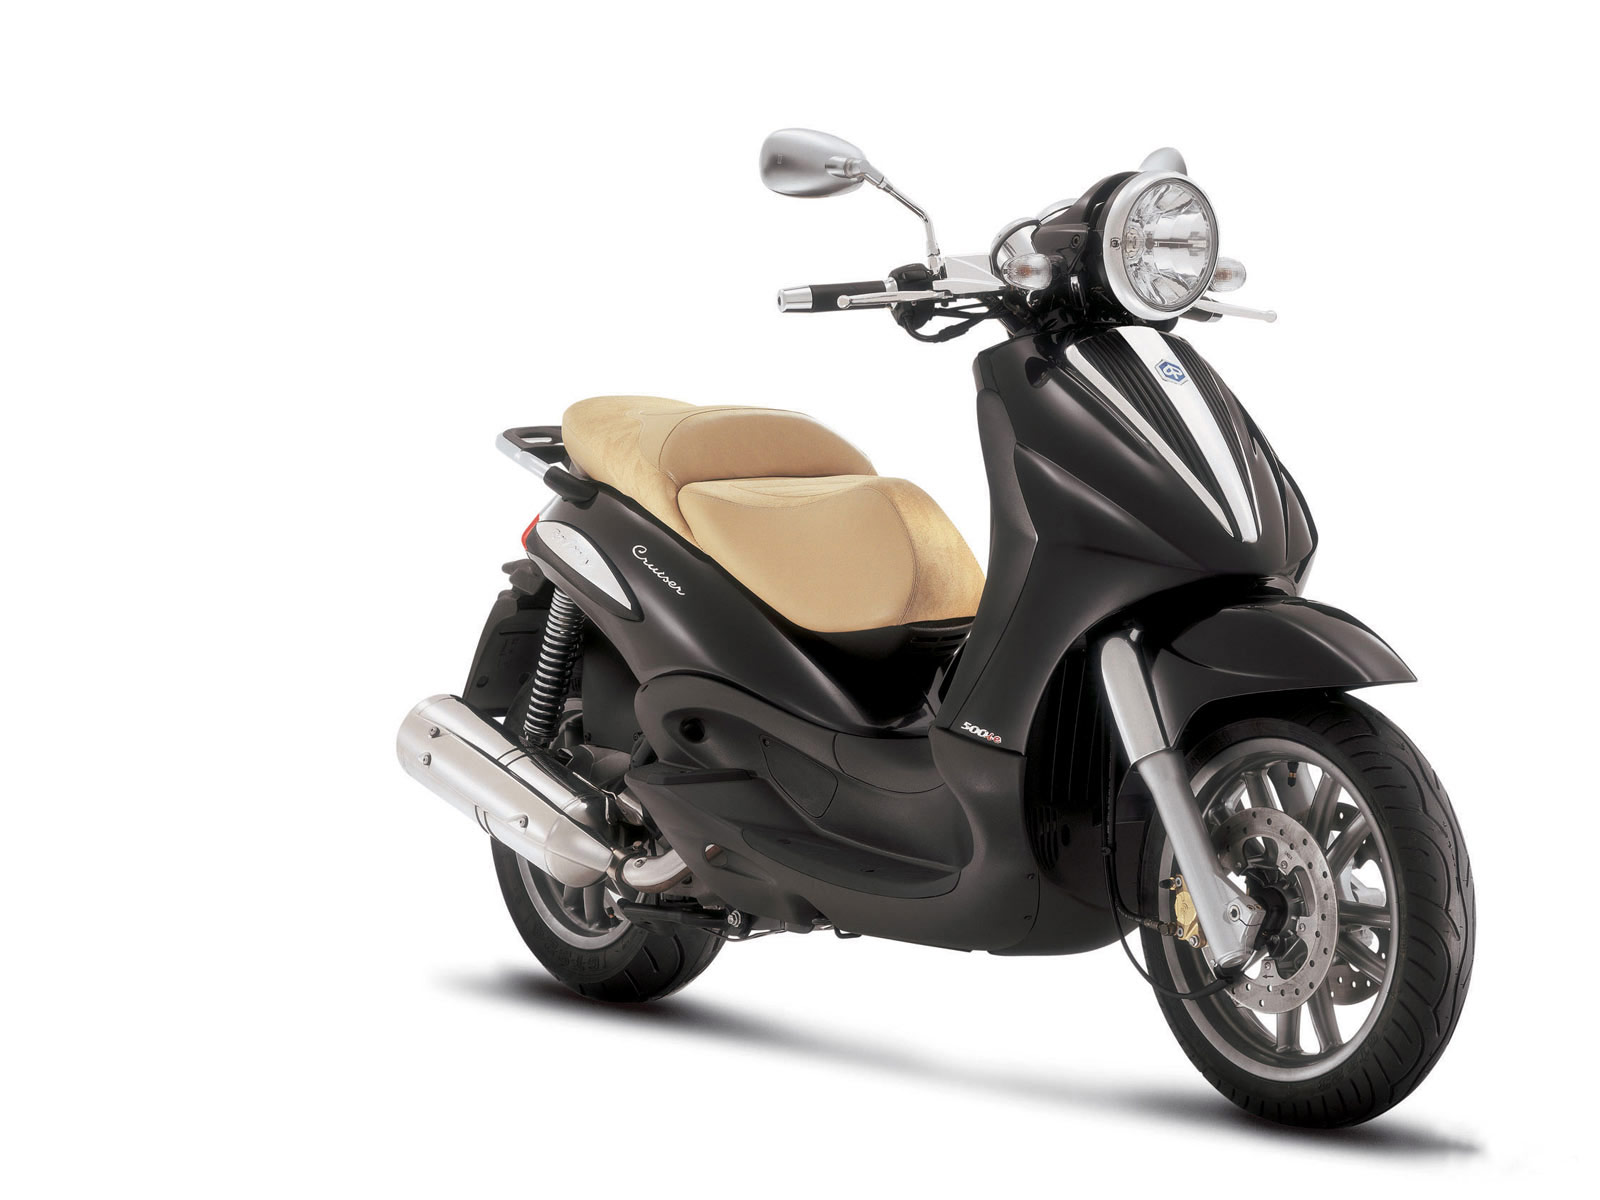 piaggio scooter pictures 2007 beverly cruiser 500. Black Bedroom Furniture Sets. Home Design Ideas